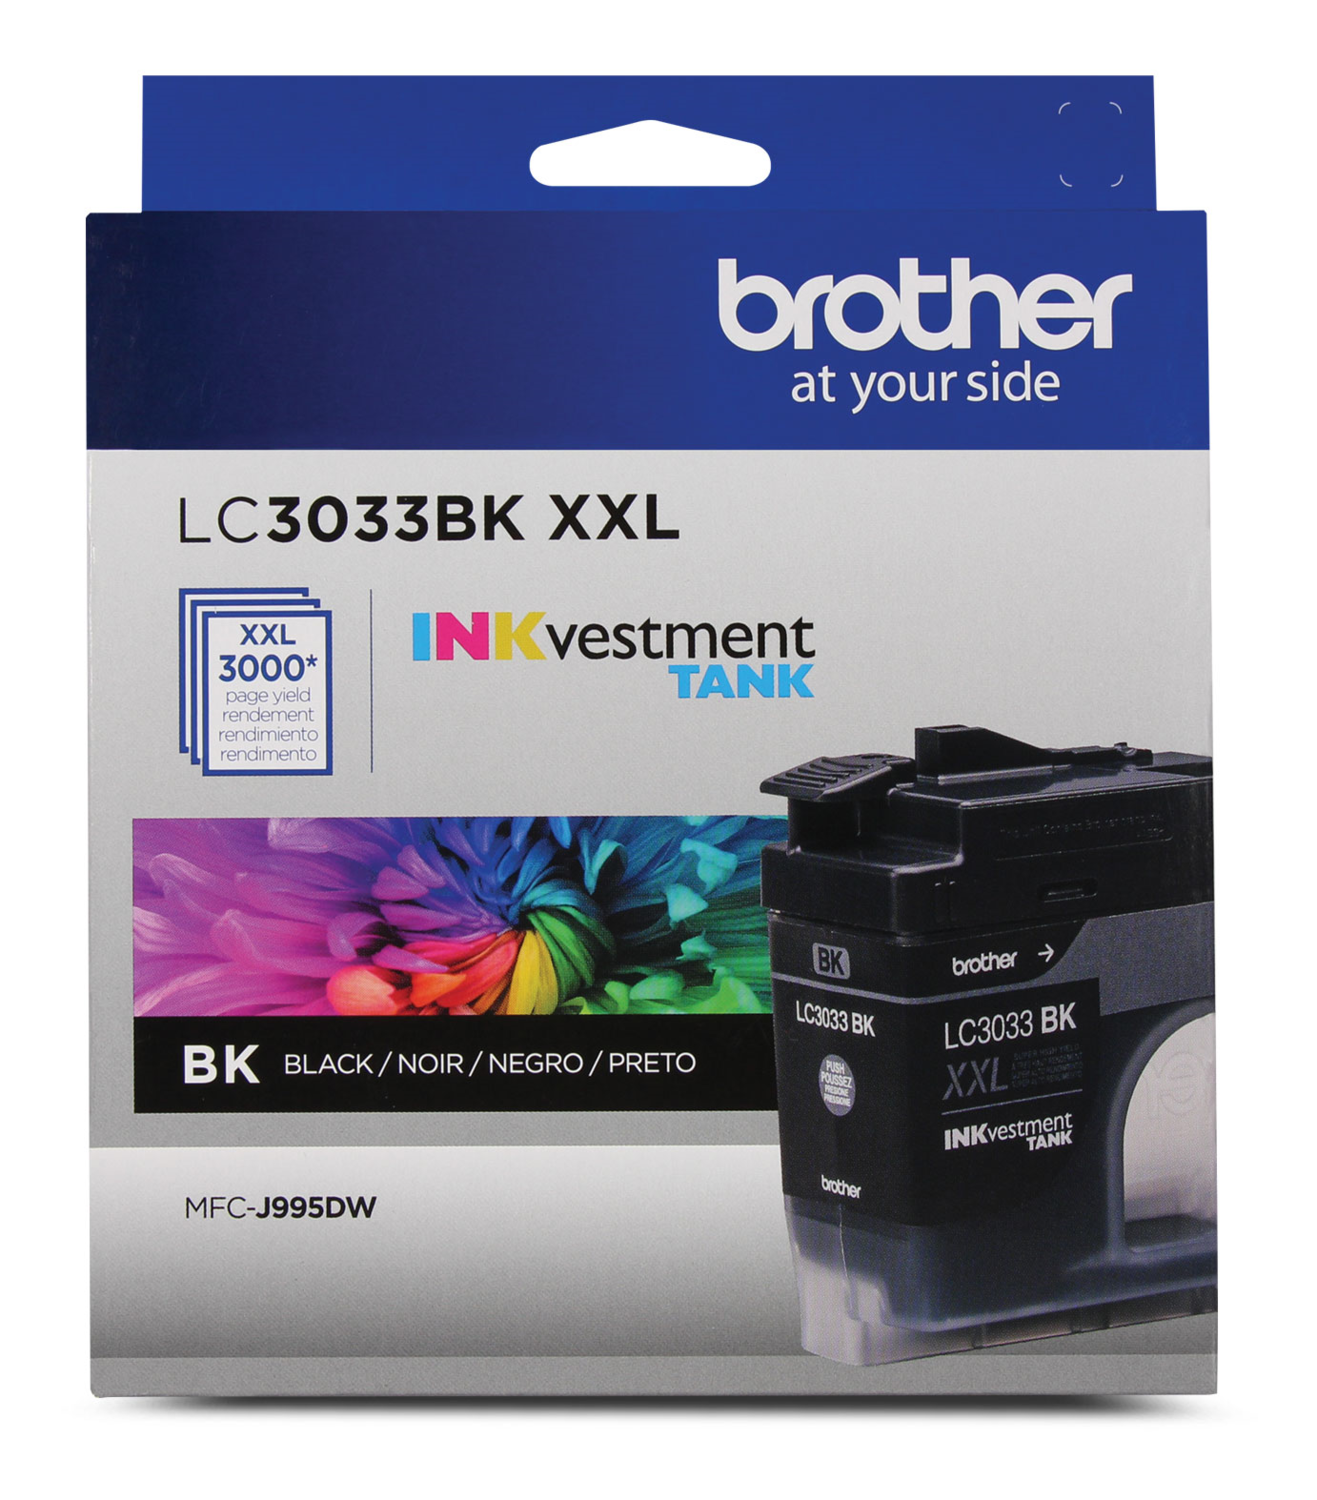 Brother Ink Lc3033Bks XXL Black